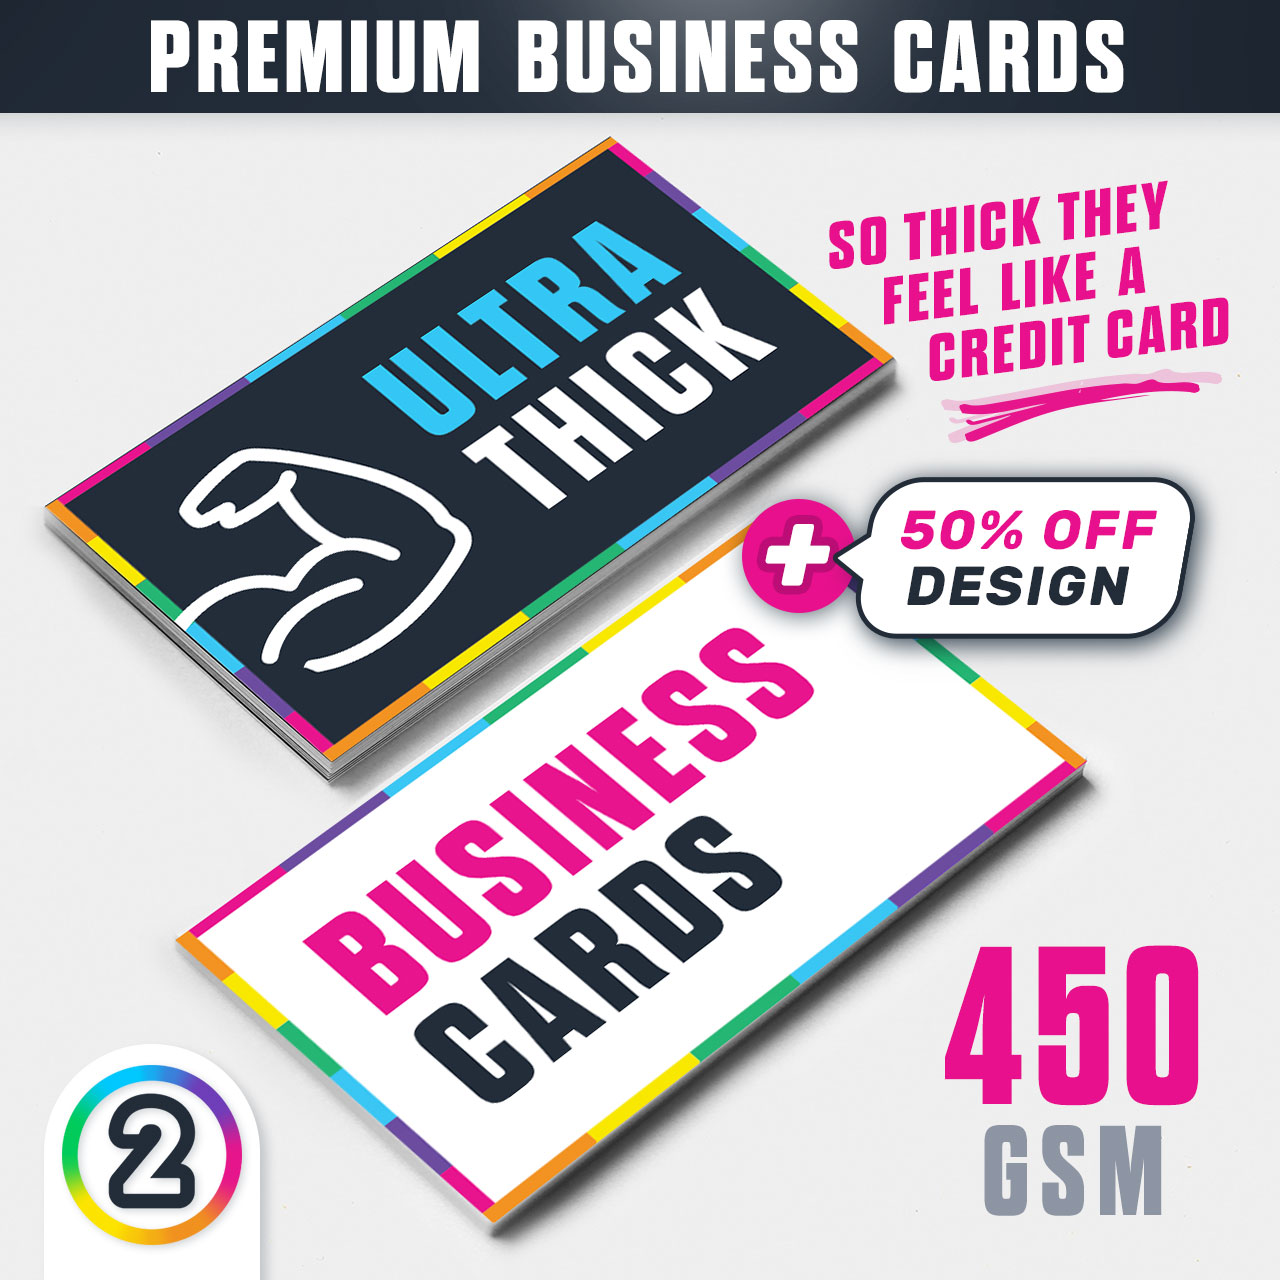 Premium business cards online australia 500 for 8800 d2p au d2p order premium business cards online australia business reheart